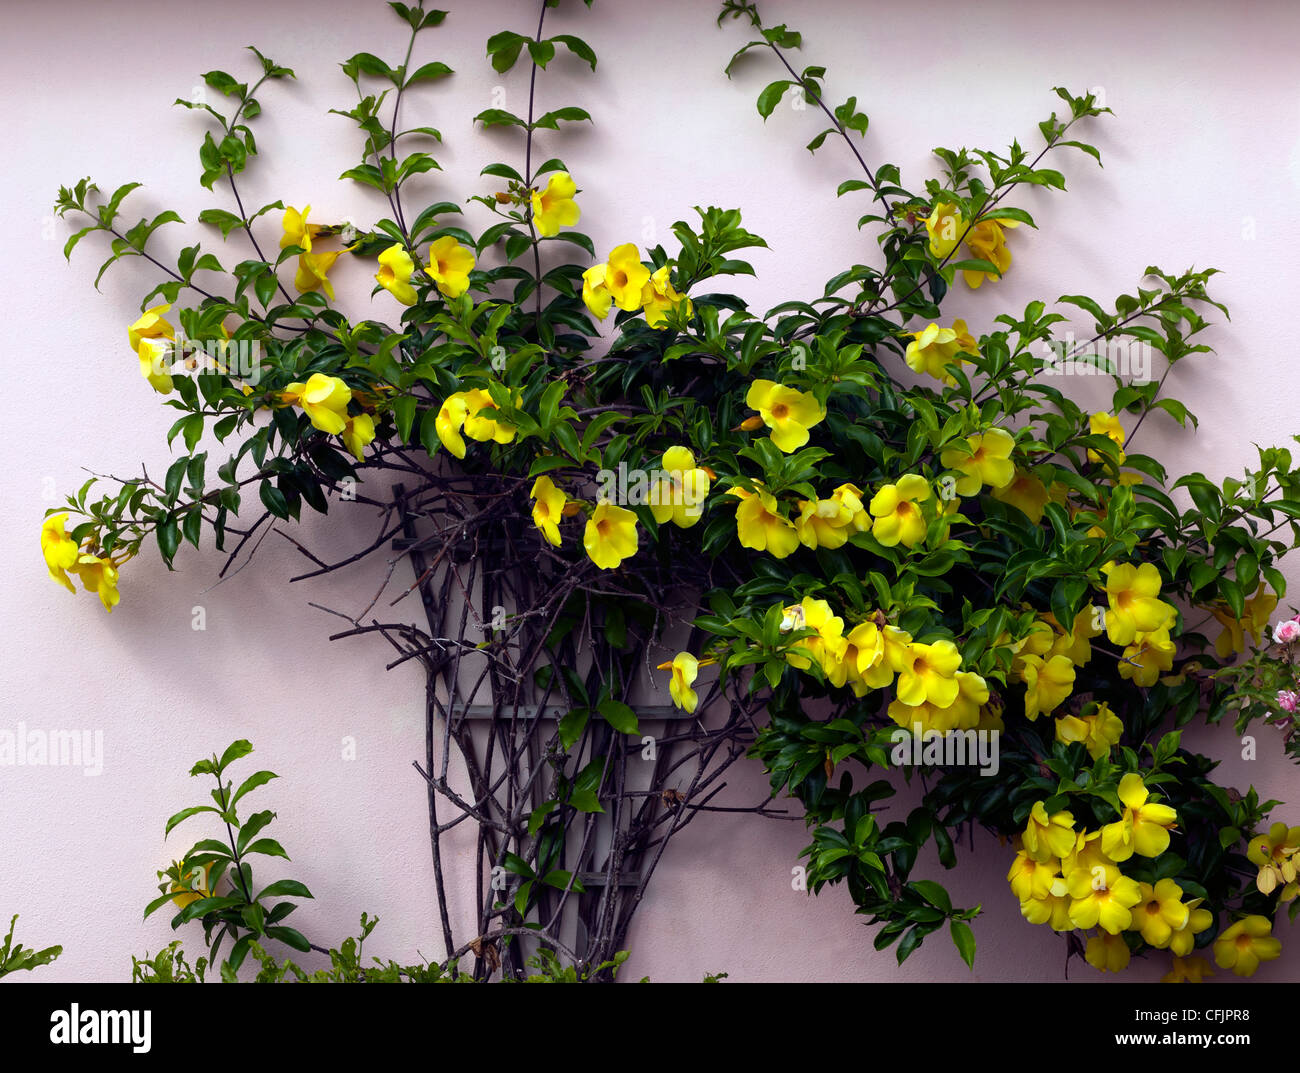 Golden Trumpet Vine Yellow Allamanda Growing On The Side Of A